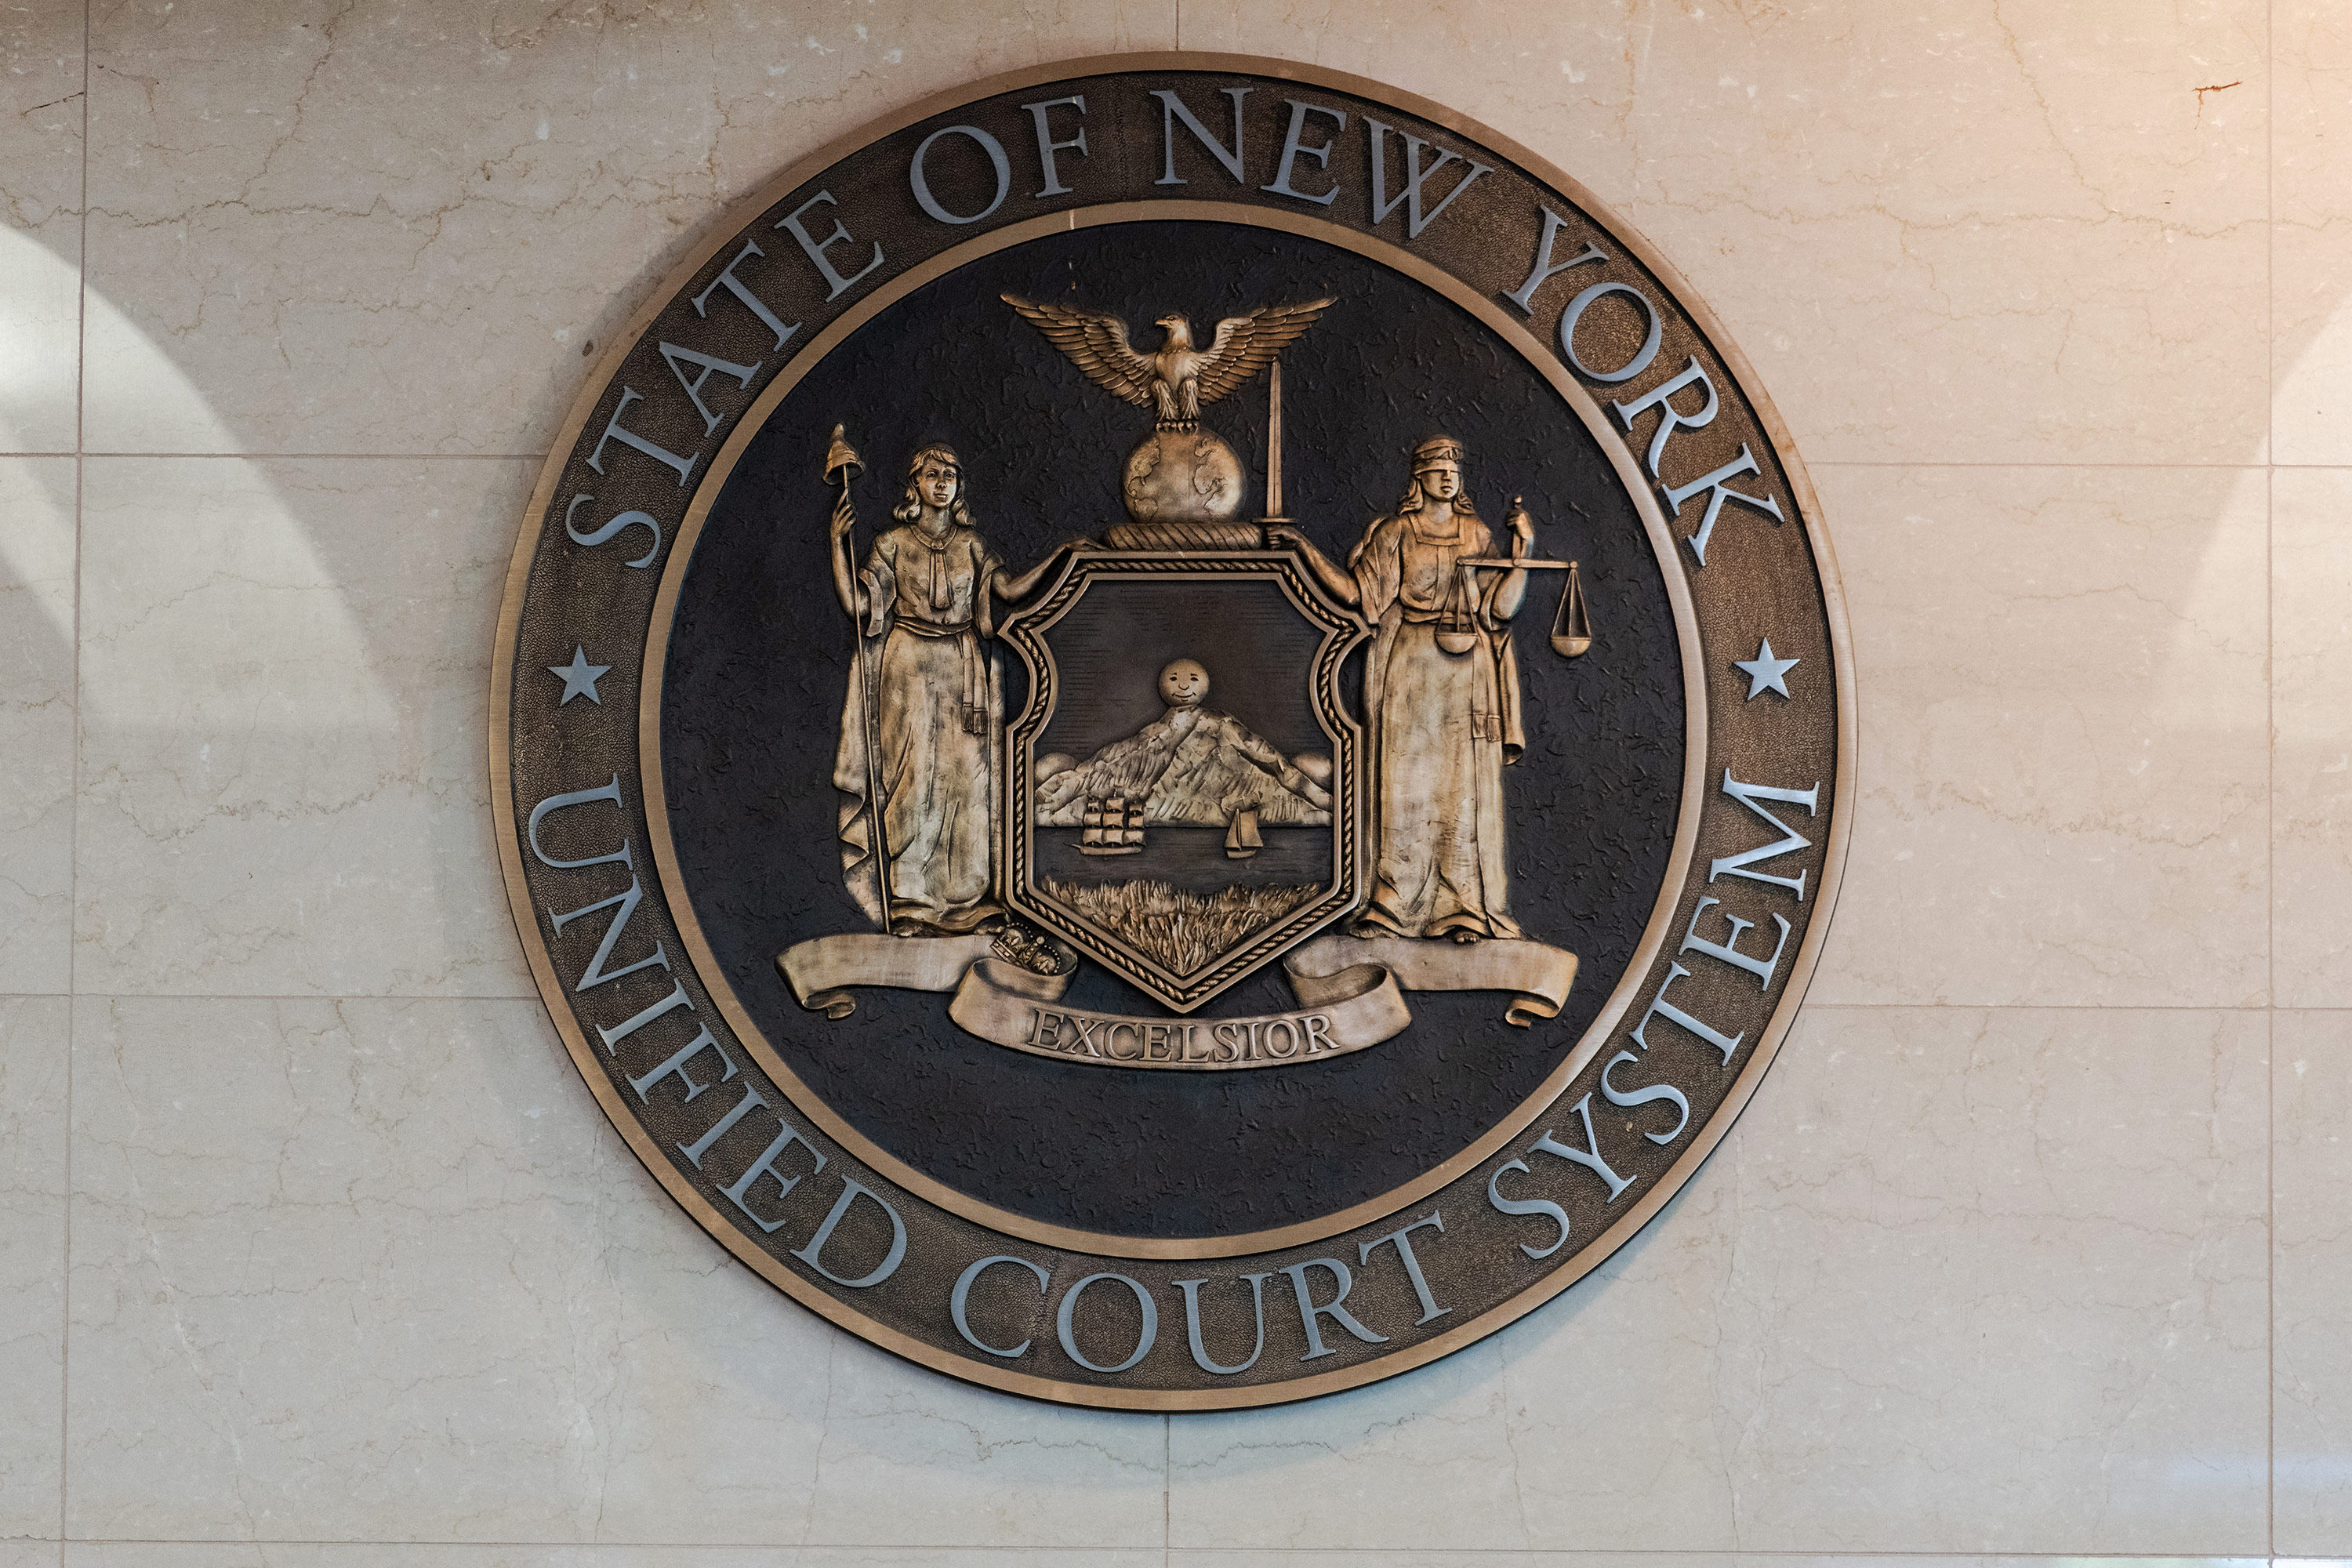 The seal of the State of New York Unified Court System hangs in the lobby of Kings County Supreme Court.